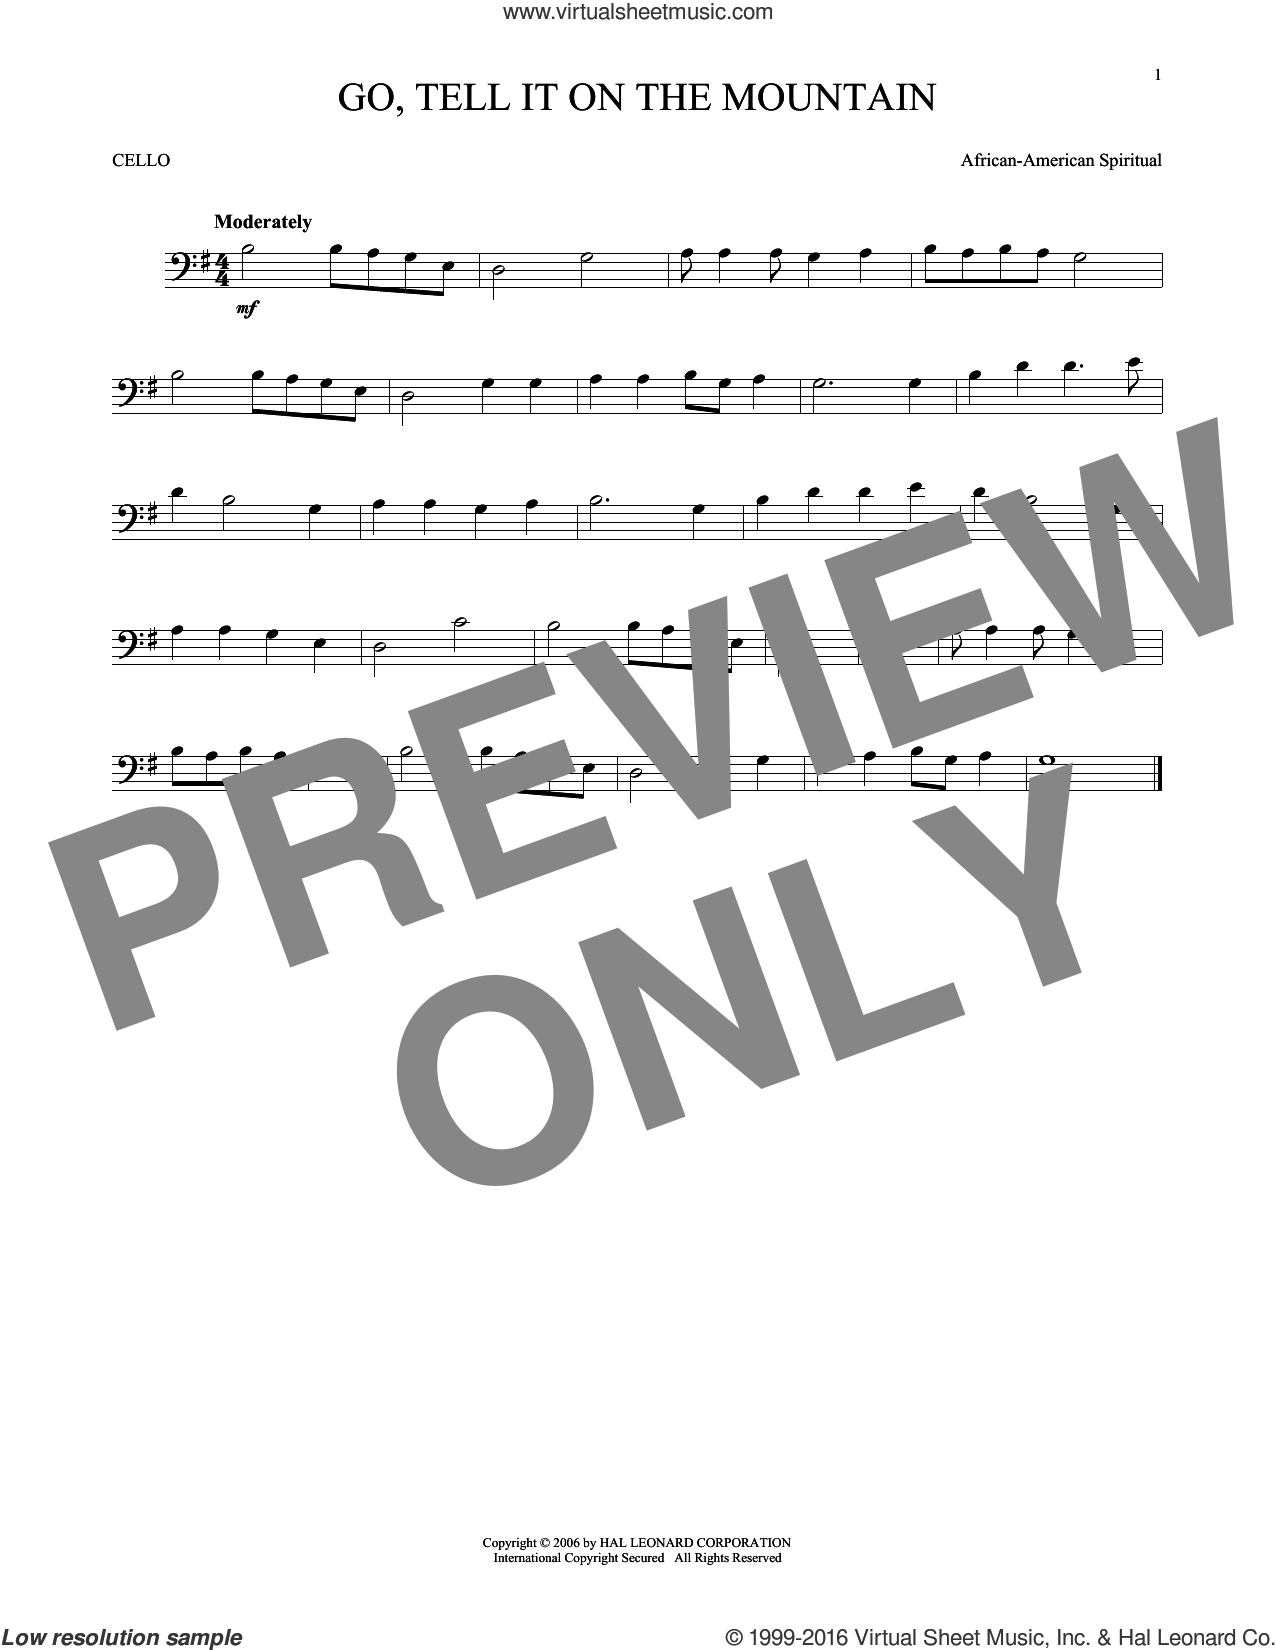 Go, Tell It On The Mountain sheet music for cello solo by John W. Work, Jr. and Miscellaneous. Score Image Preview.